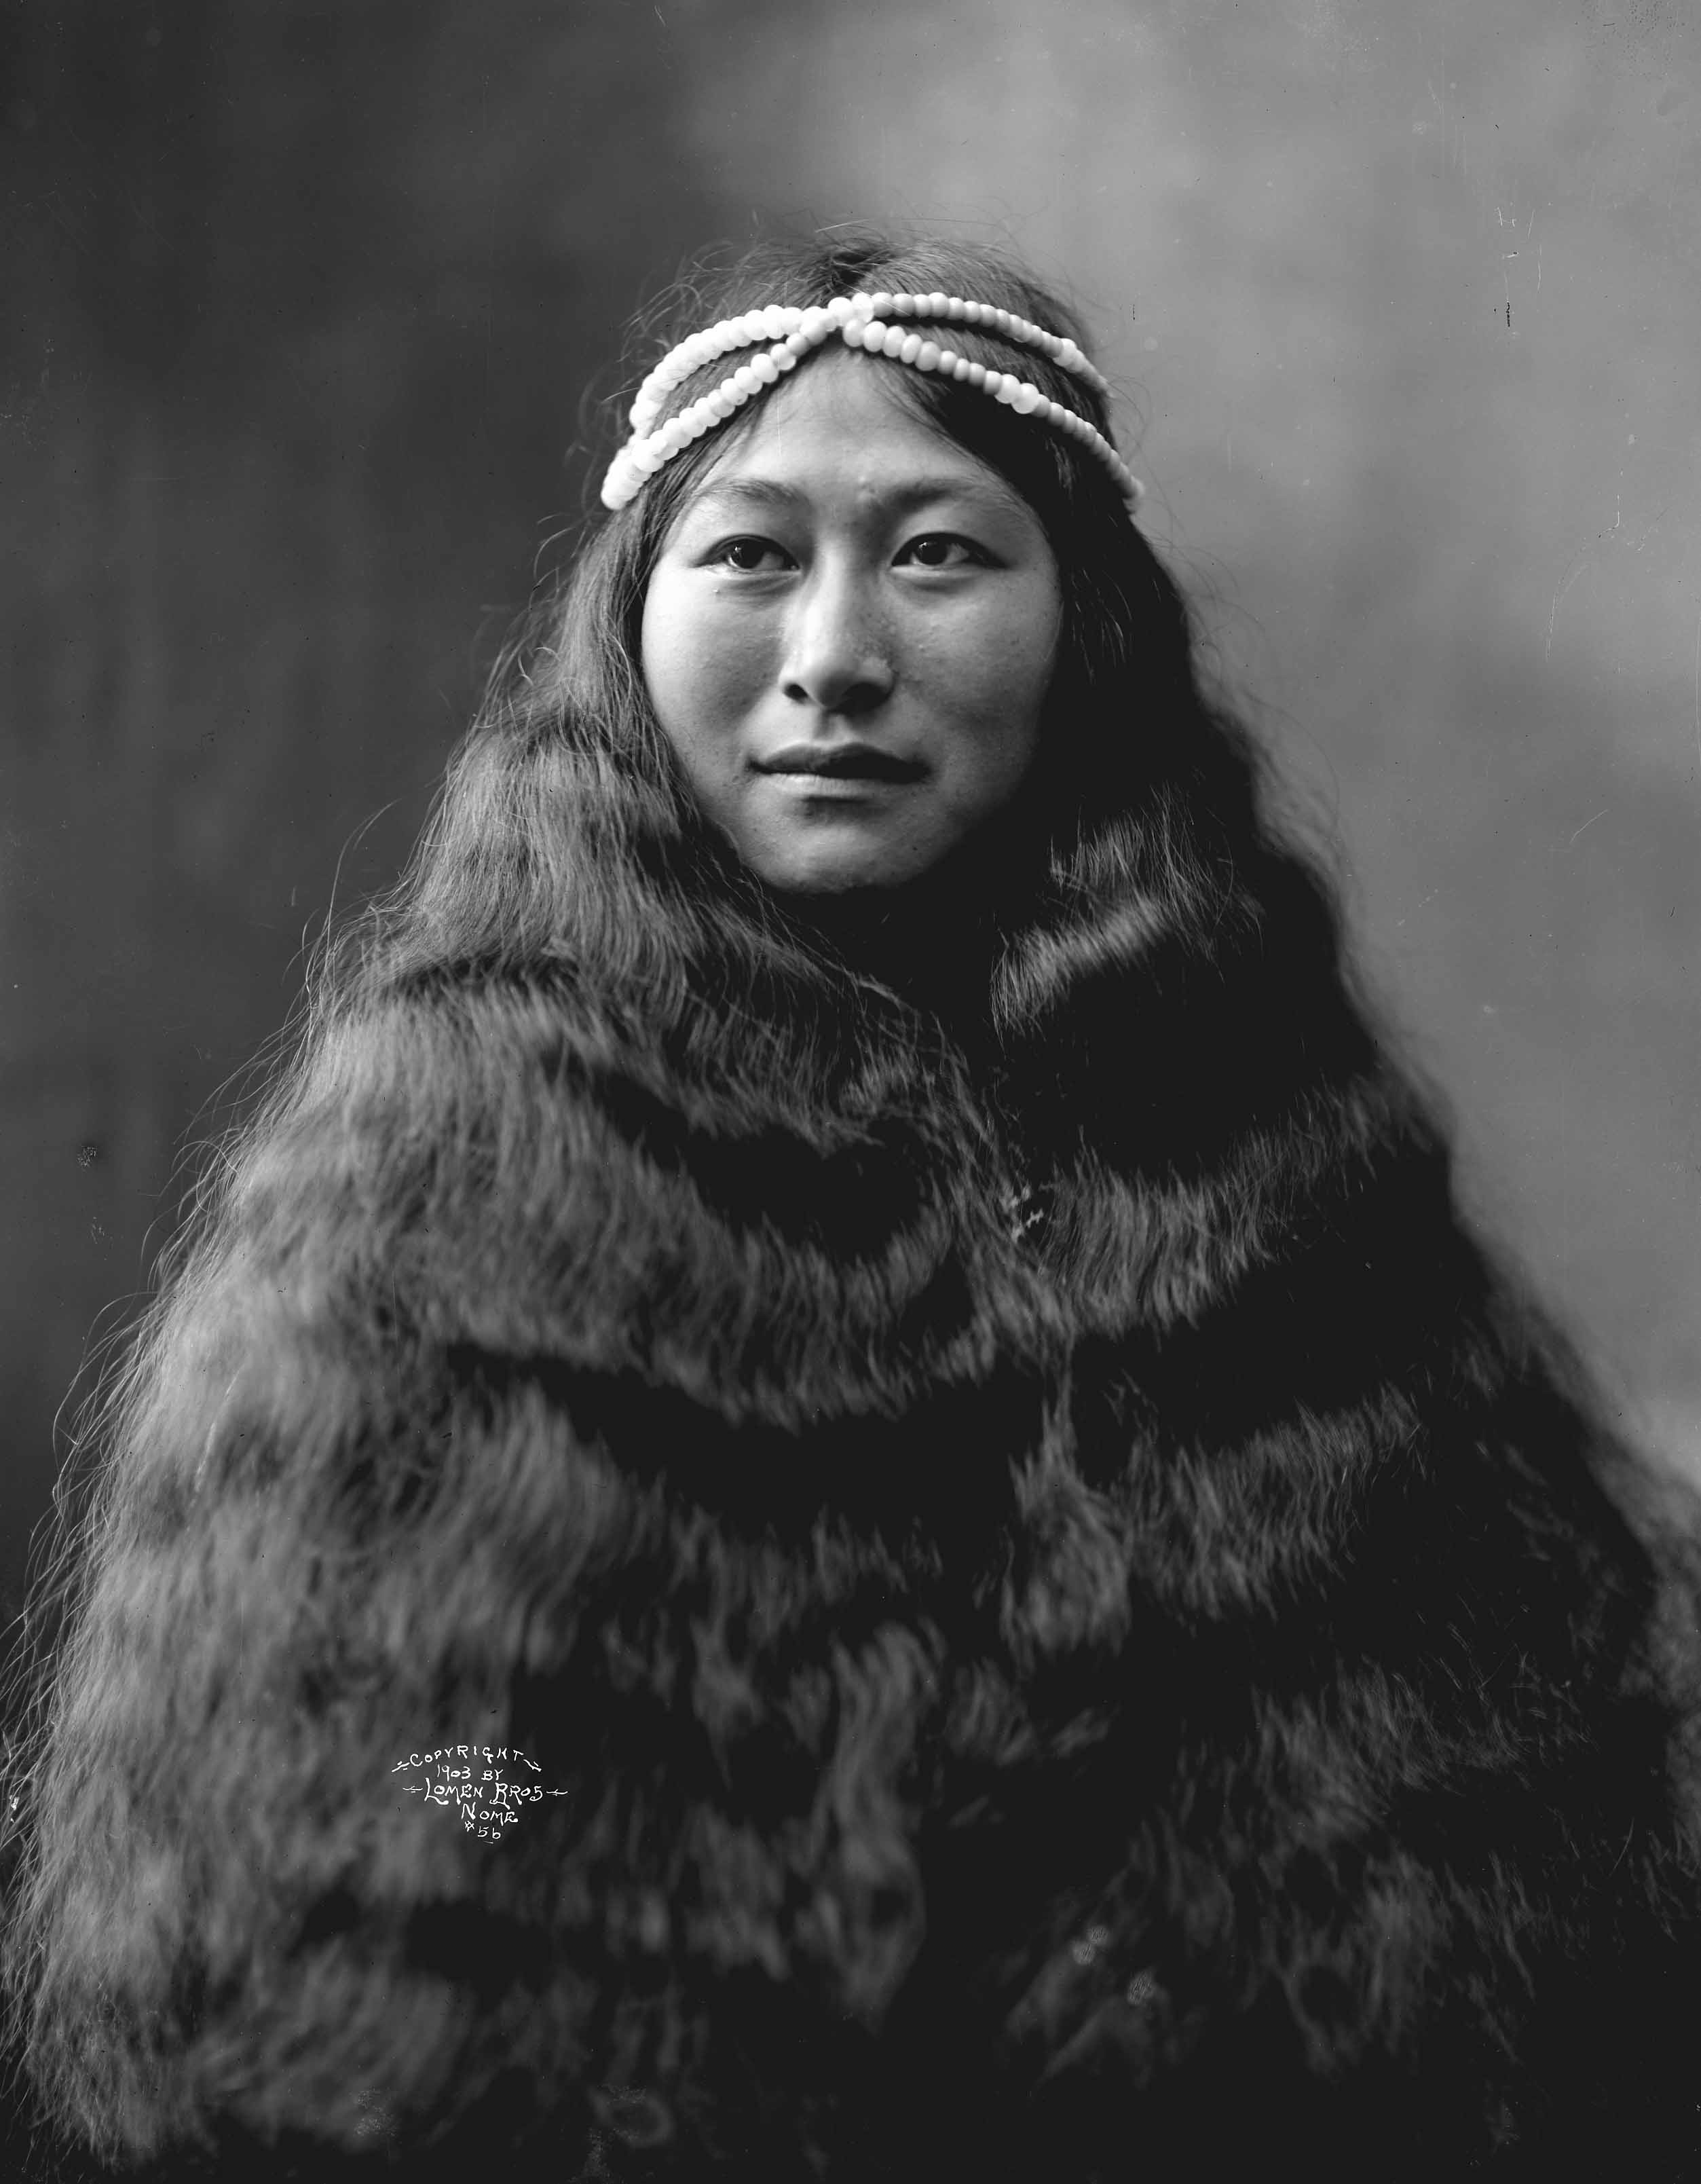 inuit women gender research This article presents the findings from research conducted by pauktuutit,an inuit women's organisation, and the university of british colombiainto the gendered social impacts of resource extraction inqamani'tuaq, nunavut territory, canada.